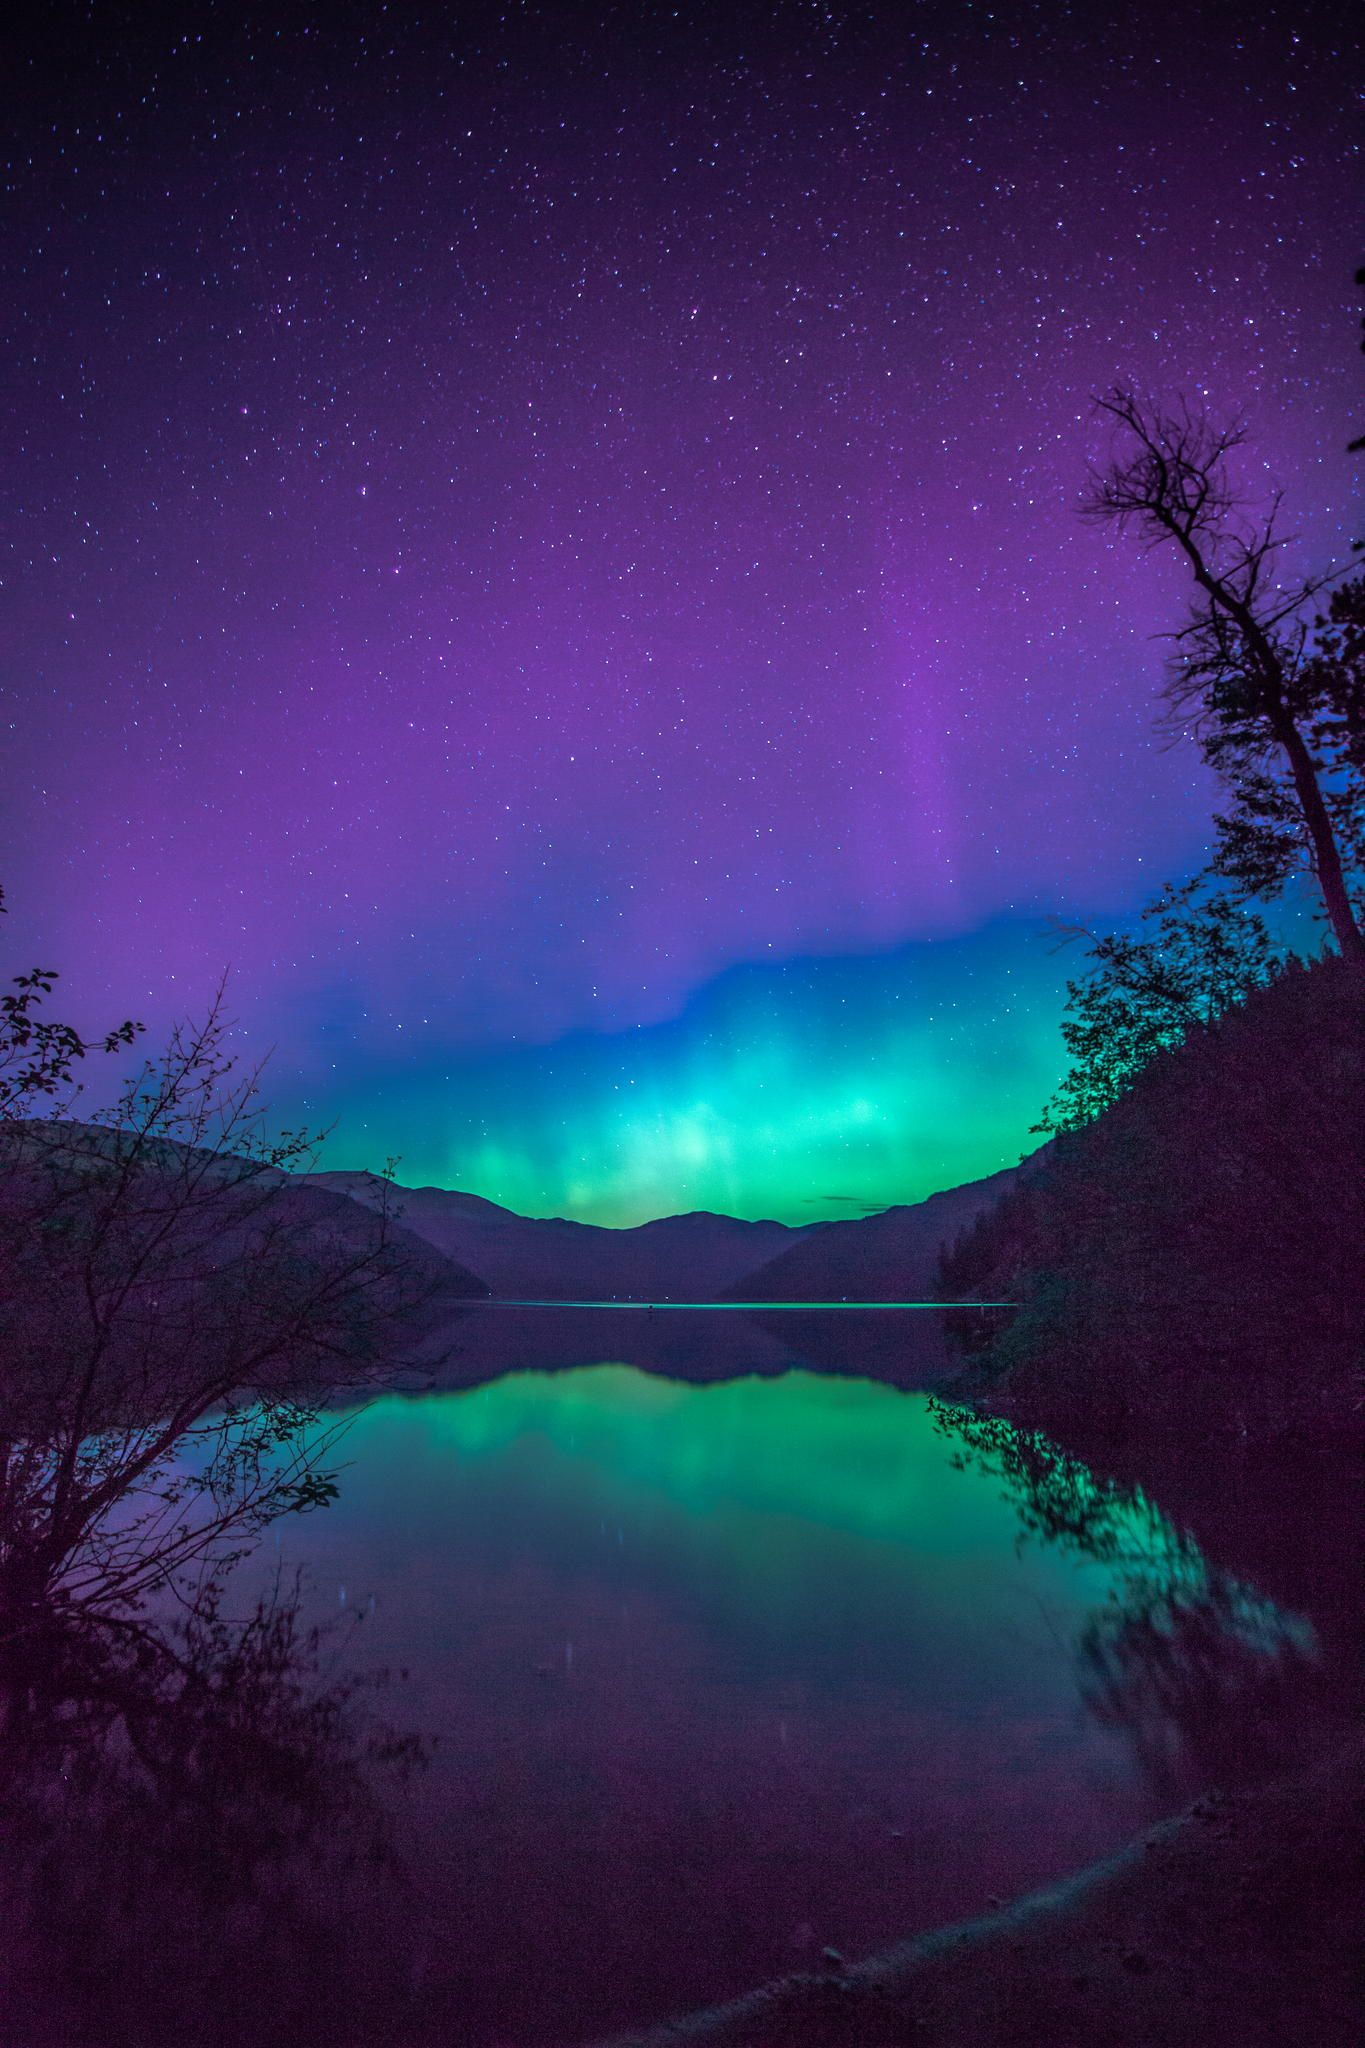 During a new moon I was fortunate to be at Christina Lake British Columbia and get a touch of the northern lights reflecting on the lake.